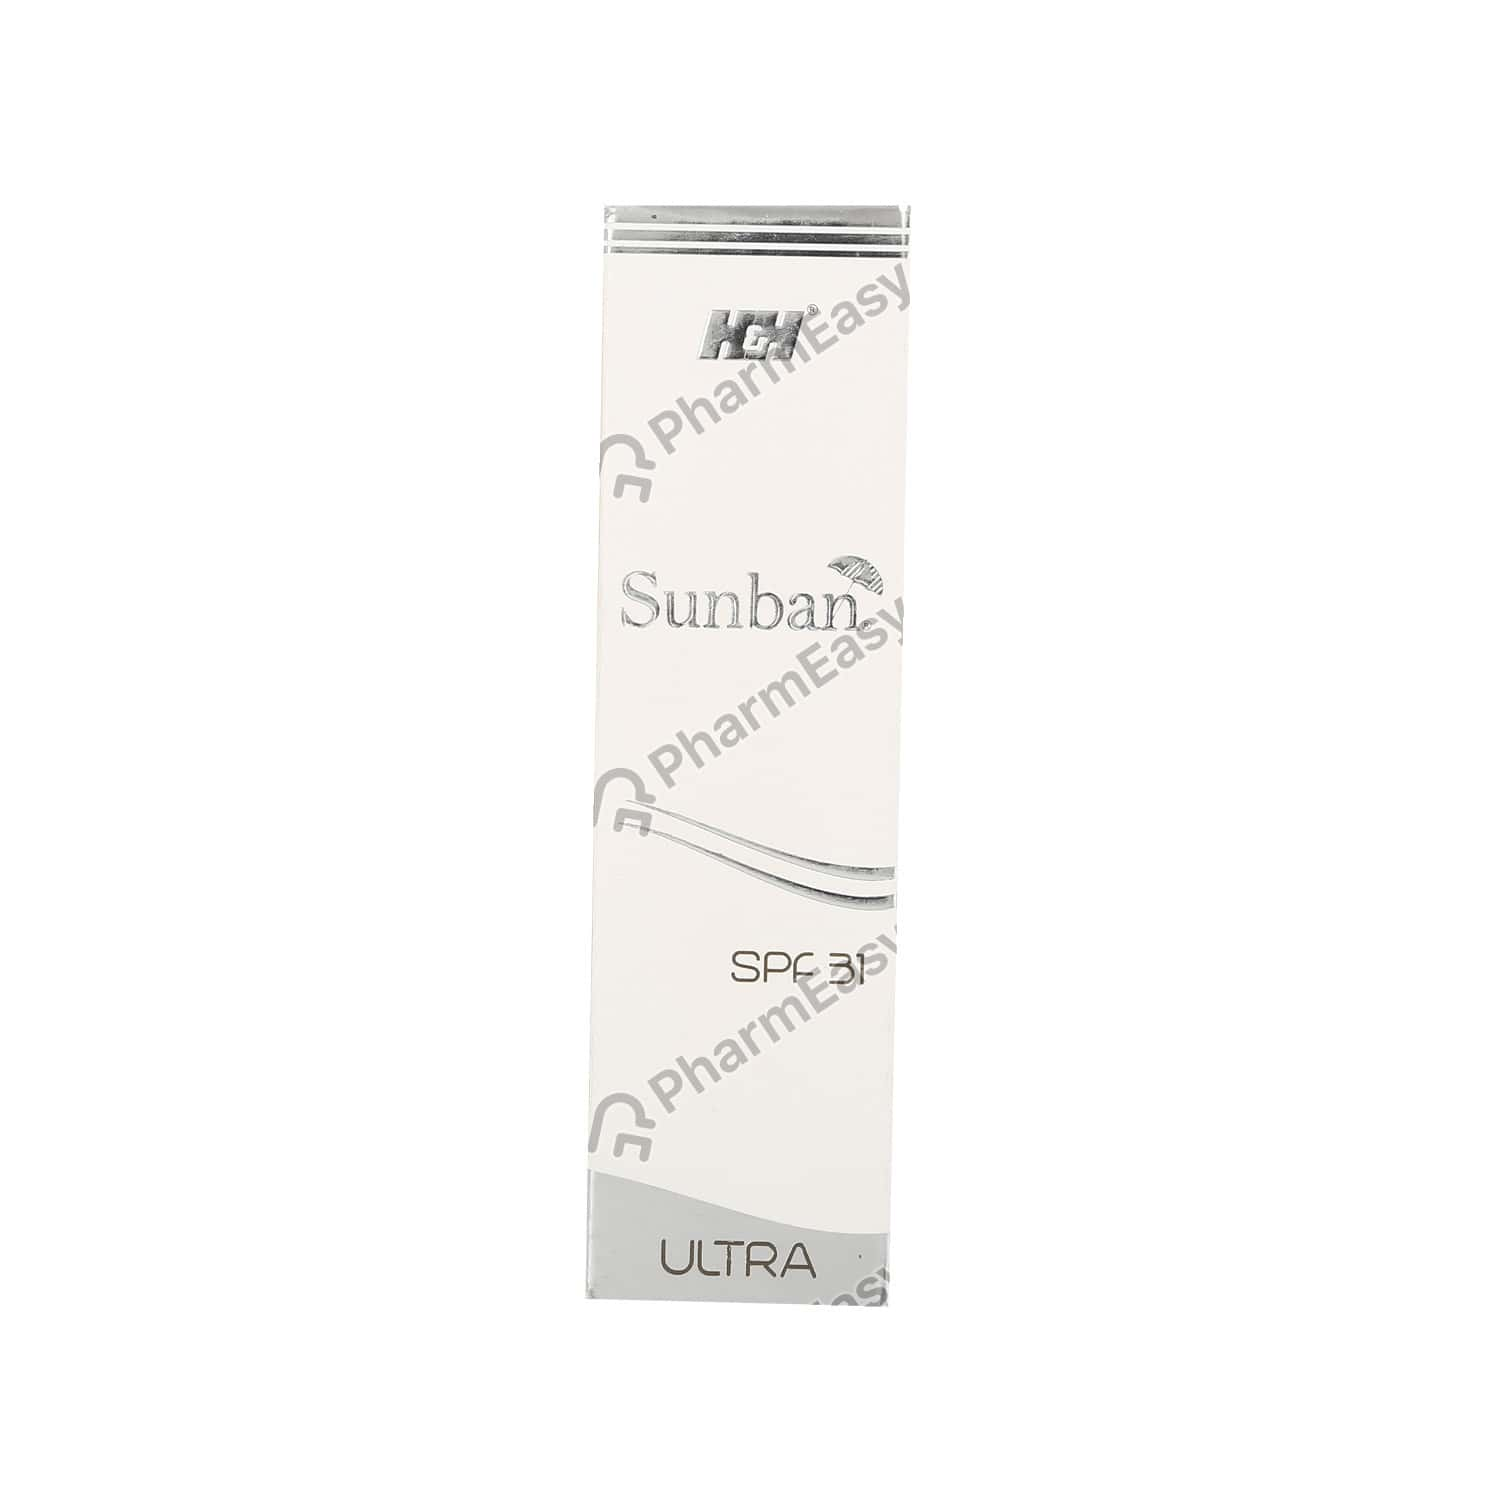 Sunban Ultra Gel 60gm